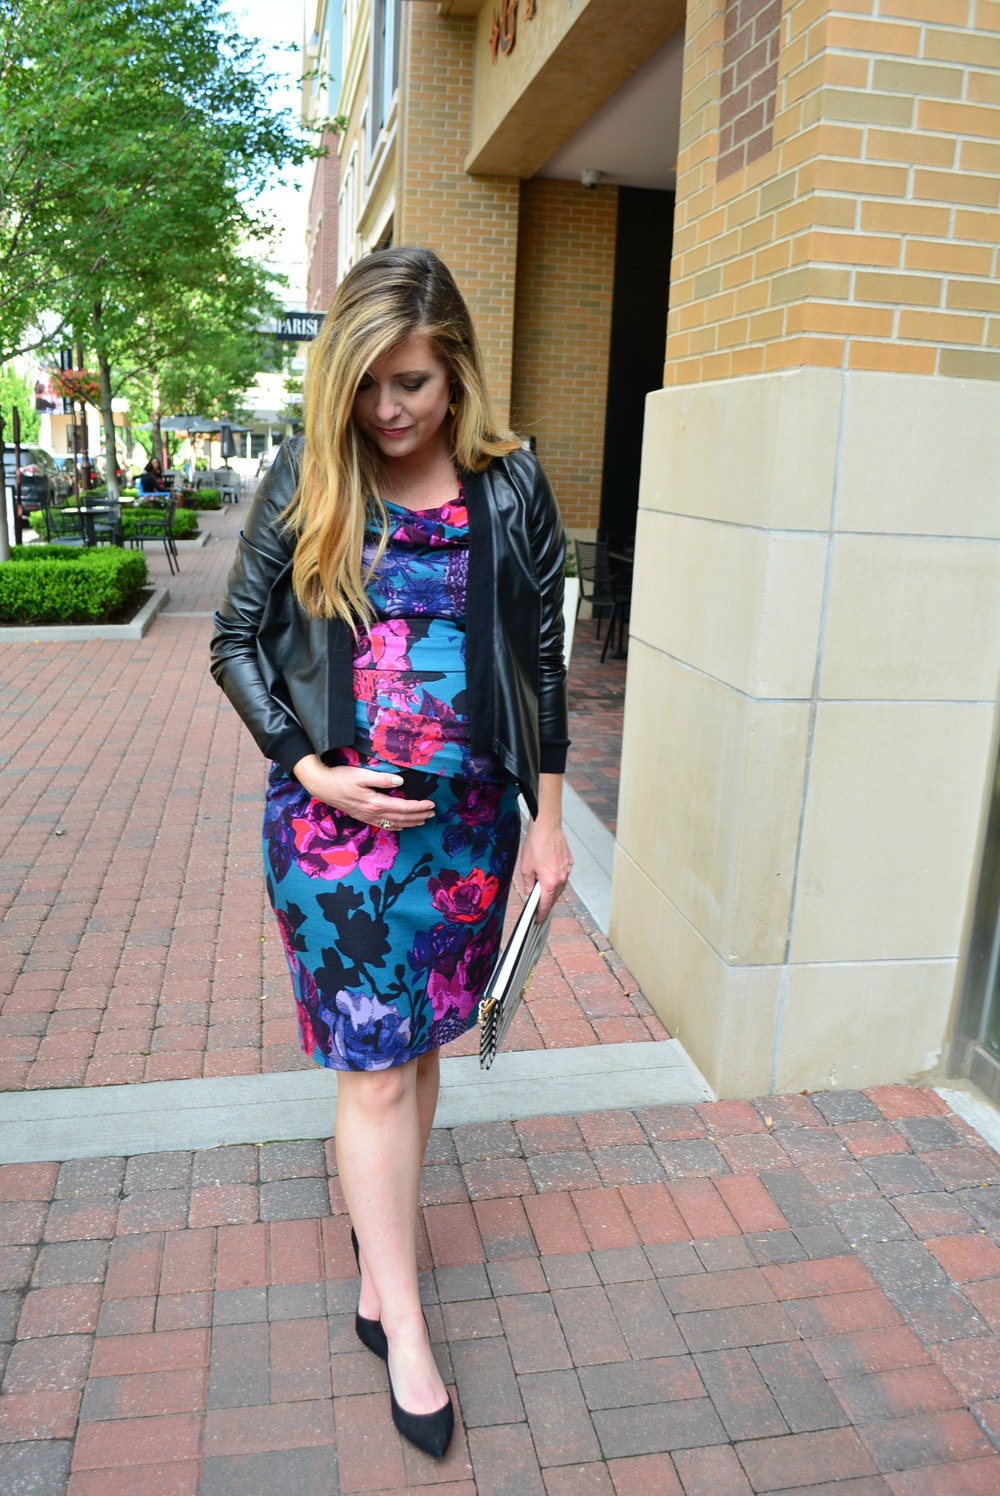 How to wear your baby shower dress out the same night!